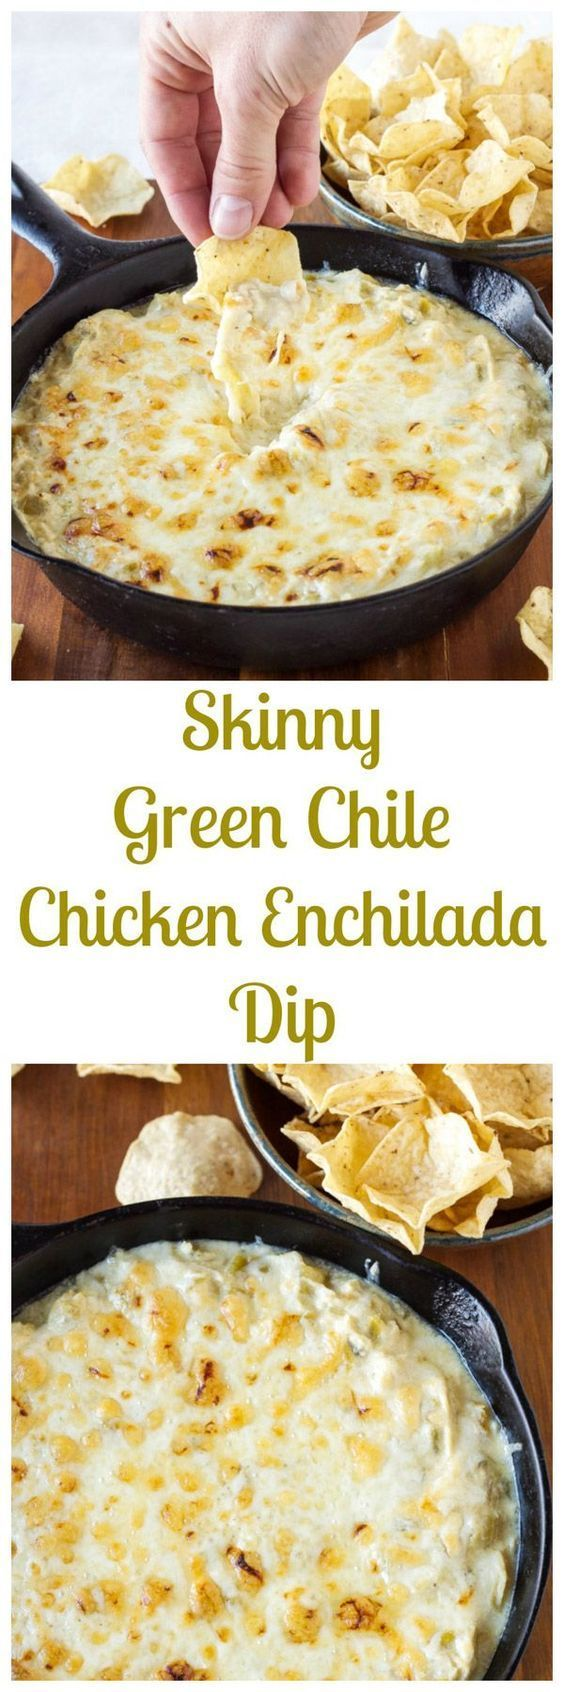 Skinny Green Chile Chicken Enchilada Dip Creamy, cheesy, enchilada dip that's good you'll want to eat it all!